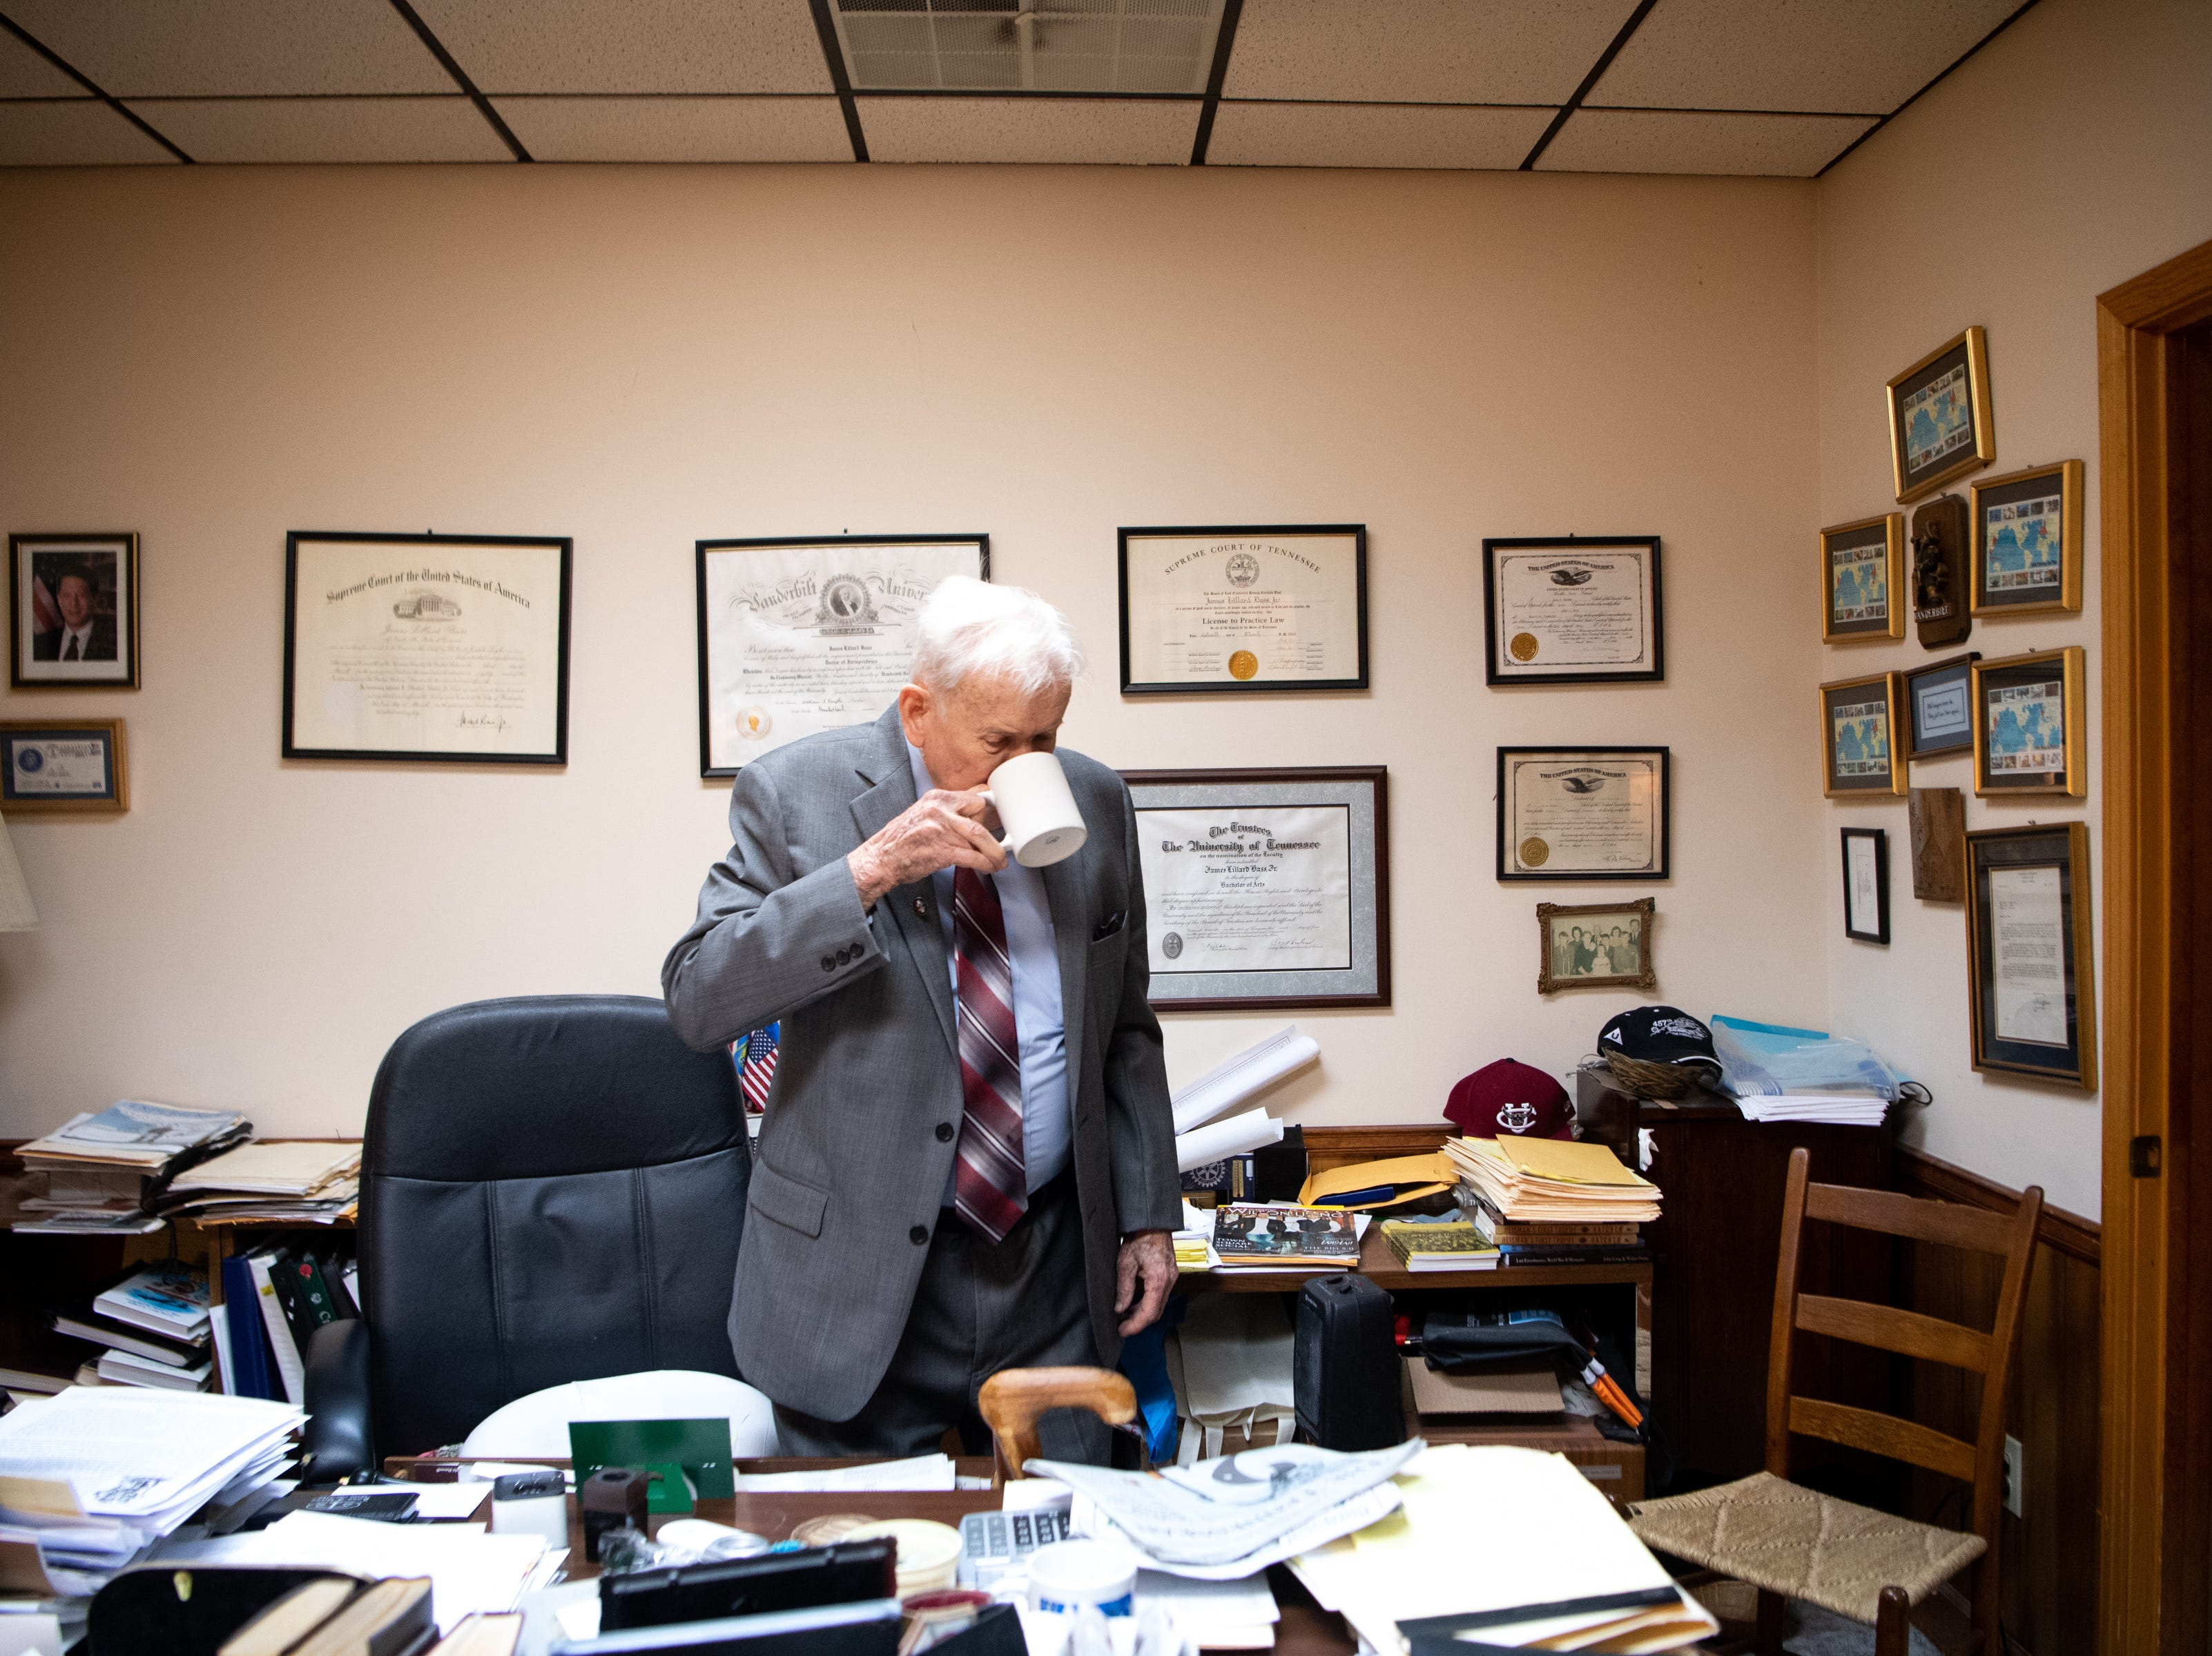 James L. Bass, 97, sips his morning cup of coffee before starting work at Bass & Bass Attorneys At Law Friday, March 29, 2019, in Carthage, Tenn. Bass still works five days a week at the family law firm after starting there 70 years ago. Bass served in World War II, went back to school to pursue a law degree and graduated Vanderbilt University School of Law in 1949.